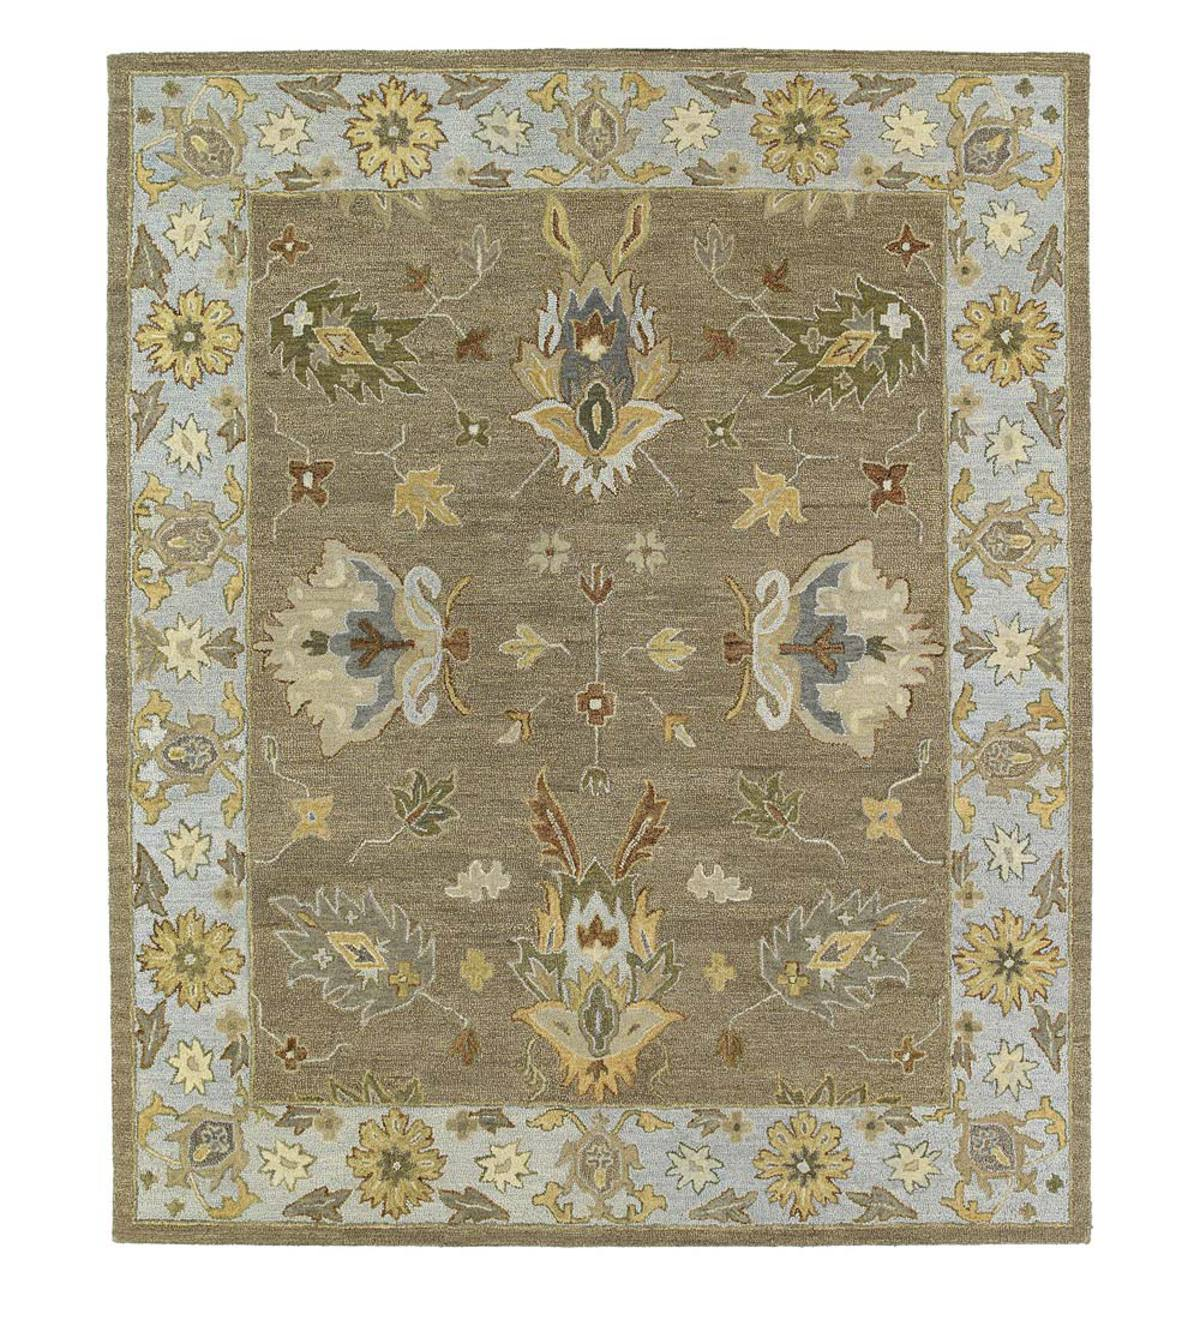 Baroque Border Tan Wool Rugs